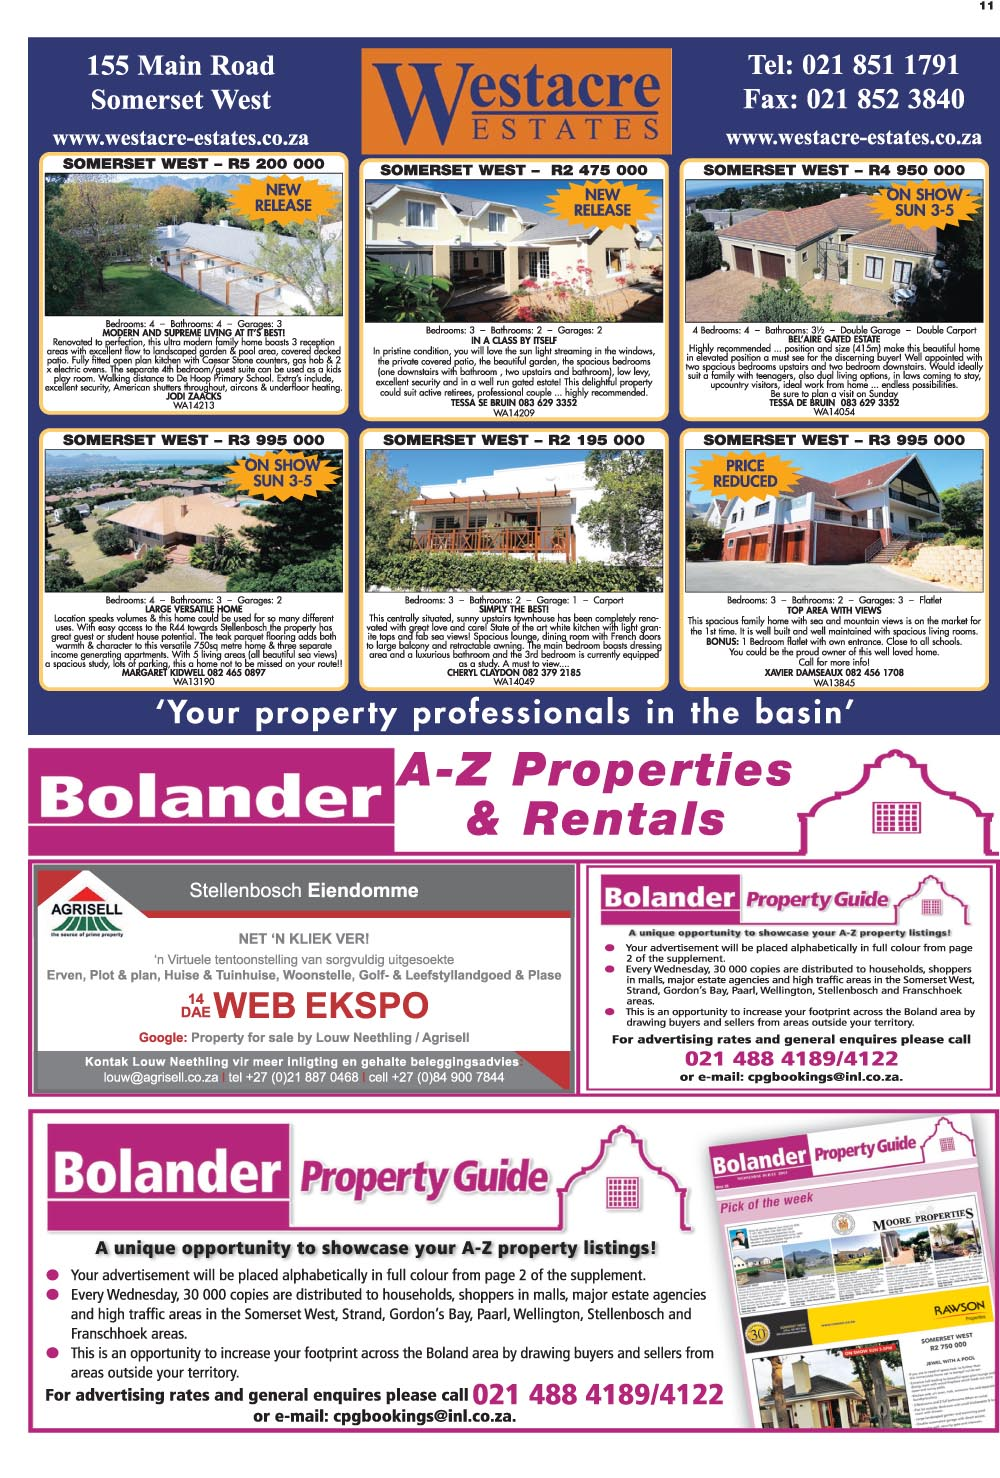 You are browsing images from the article: Property Selection May 13 2015